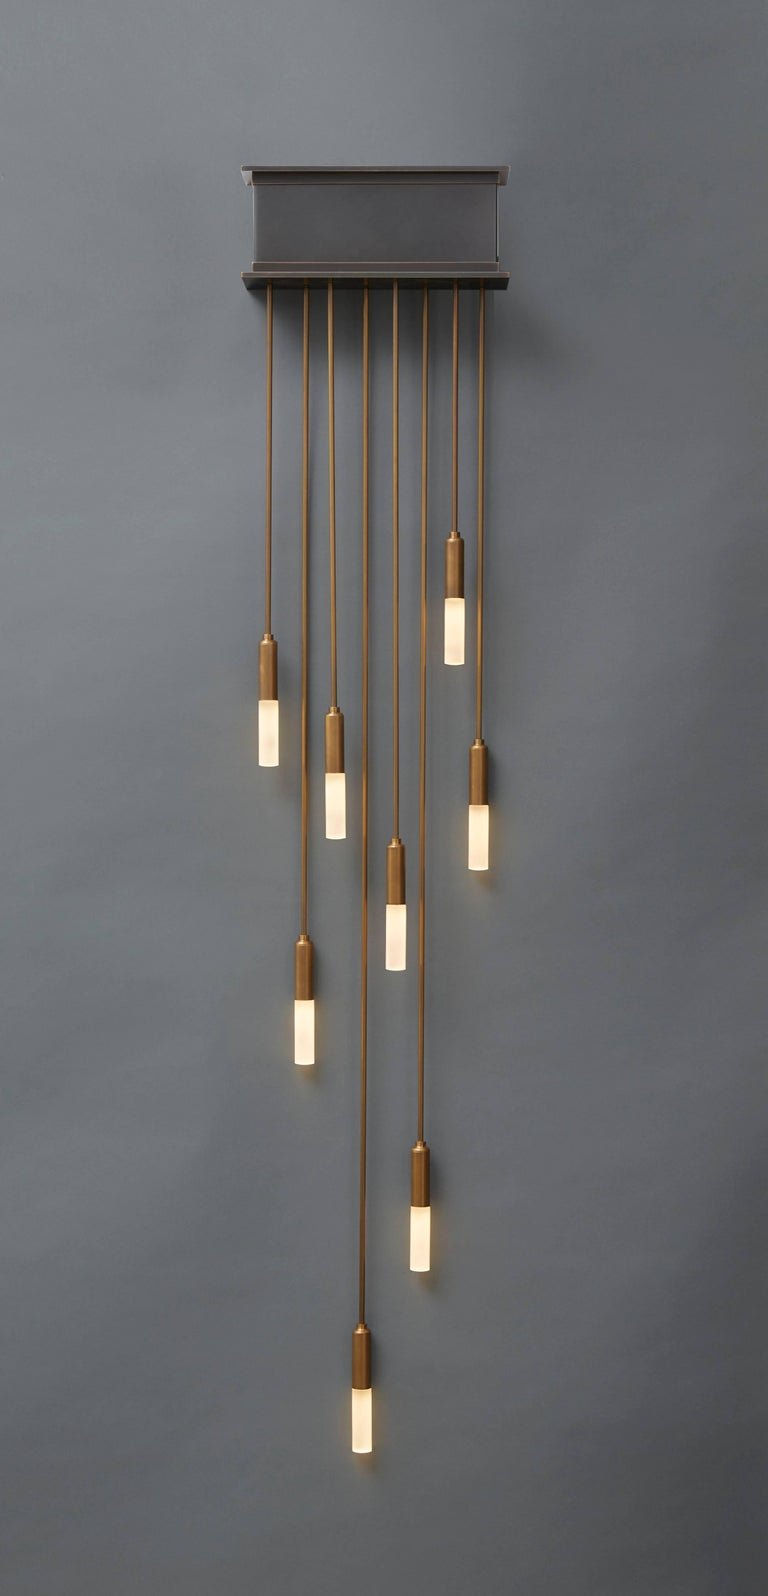 Our Amuneal designed drop light sconce combines precision machined components with a hand-applied finish to offer a clean and dramatic design for any space. This modern light is fabricated in our Philadelphia-based furniture studio and is